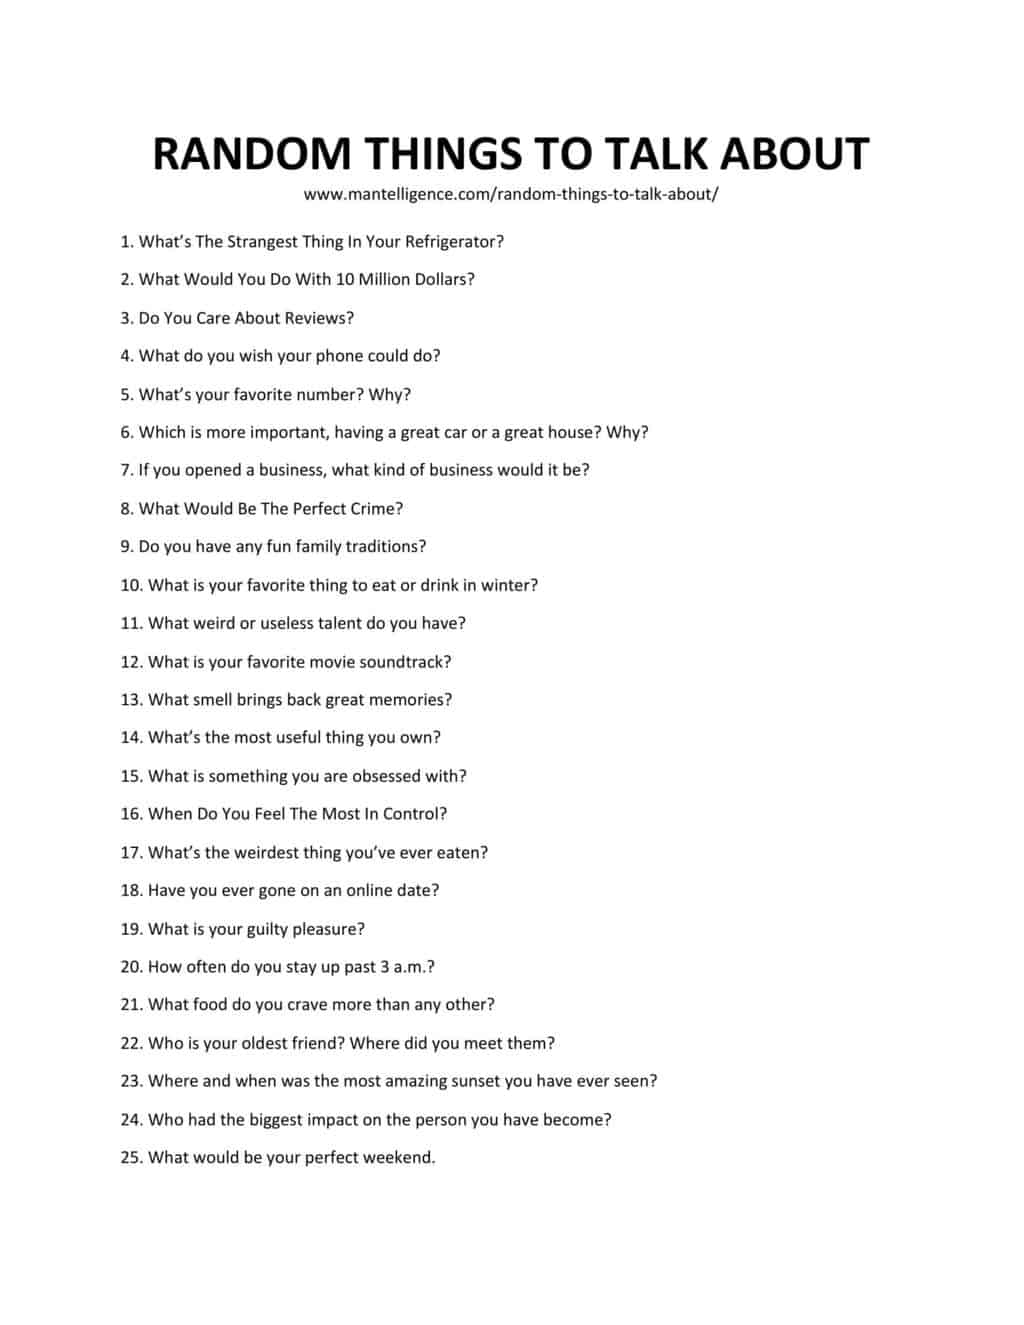 Downloadable and printable list of random things to talk about as jpg or pdf